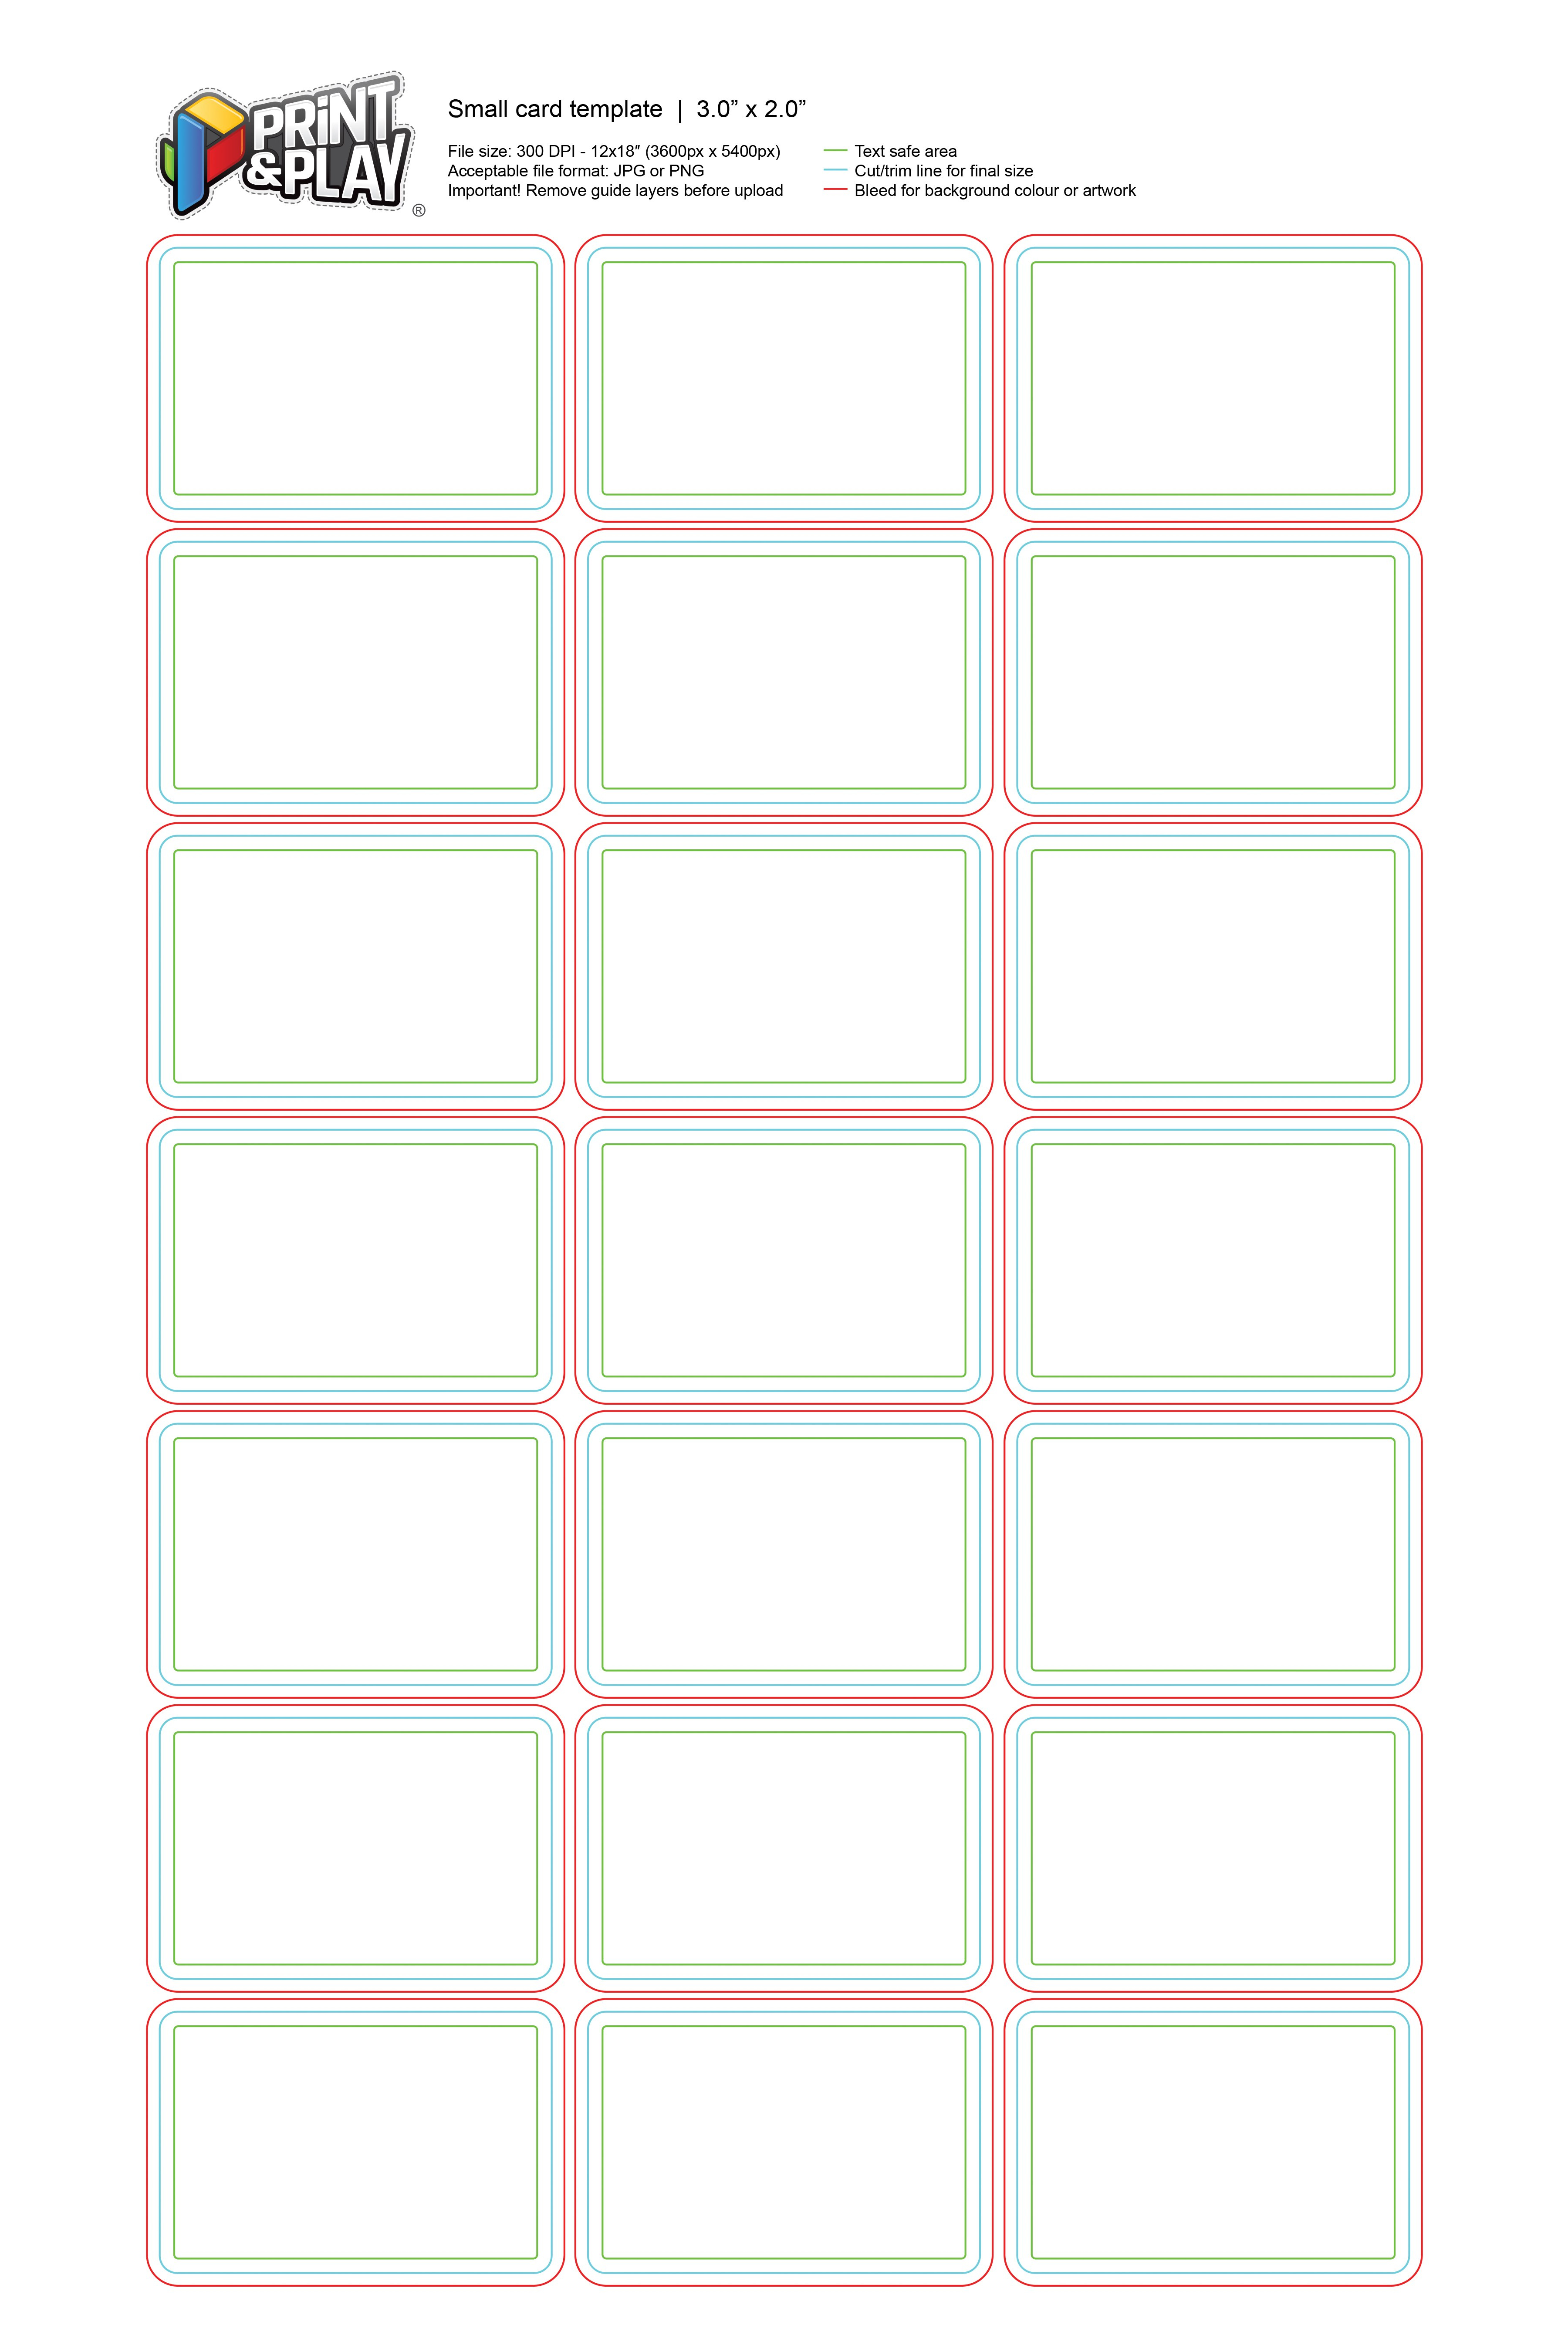 Playing Cards  Formatting  Templates  Print  Play With Regard To Template For Playing Cards Printable